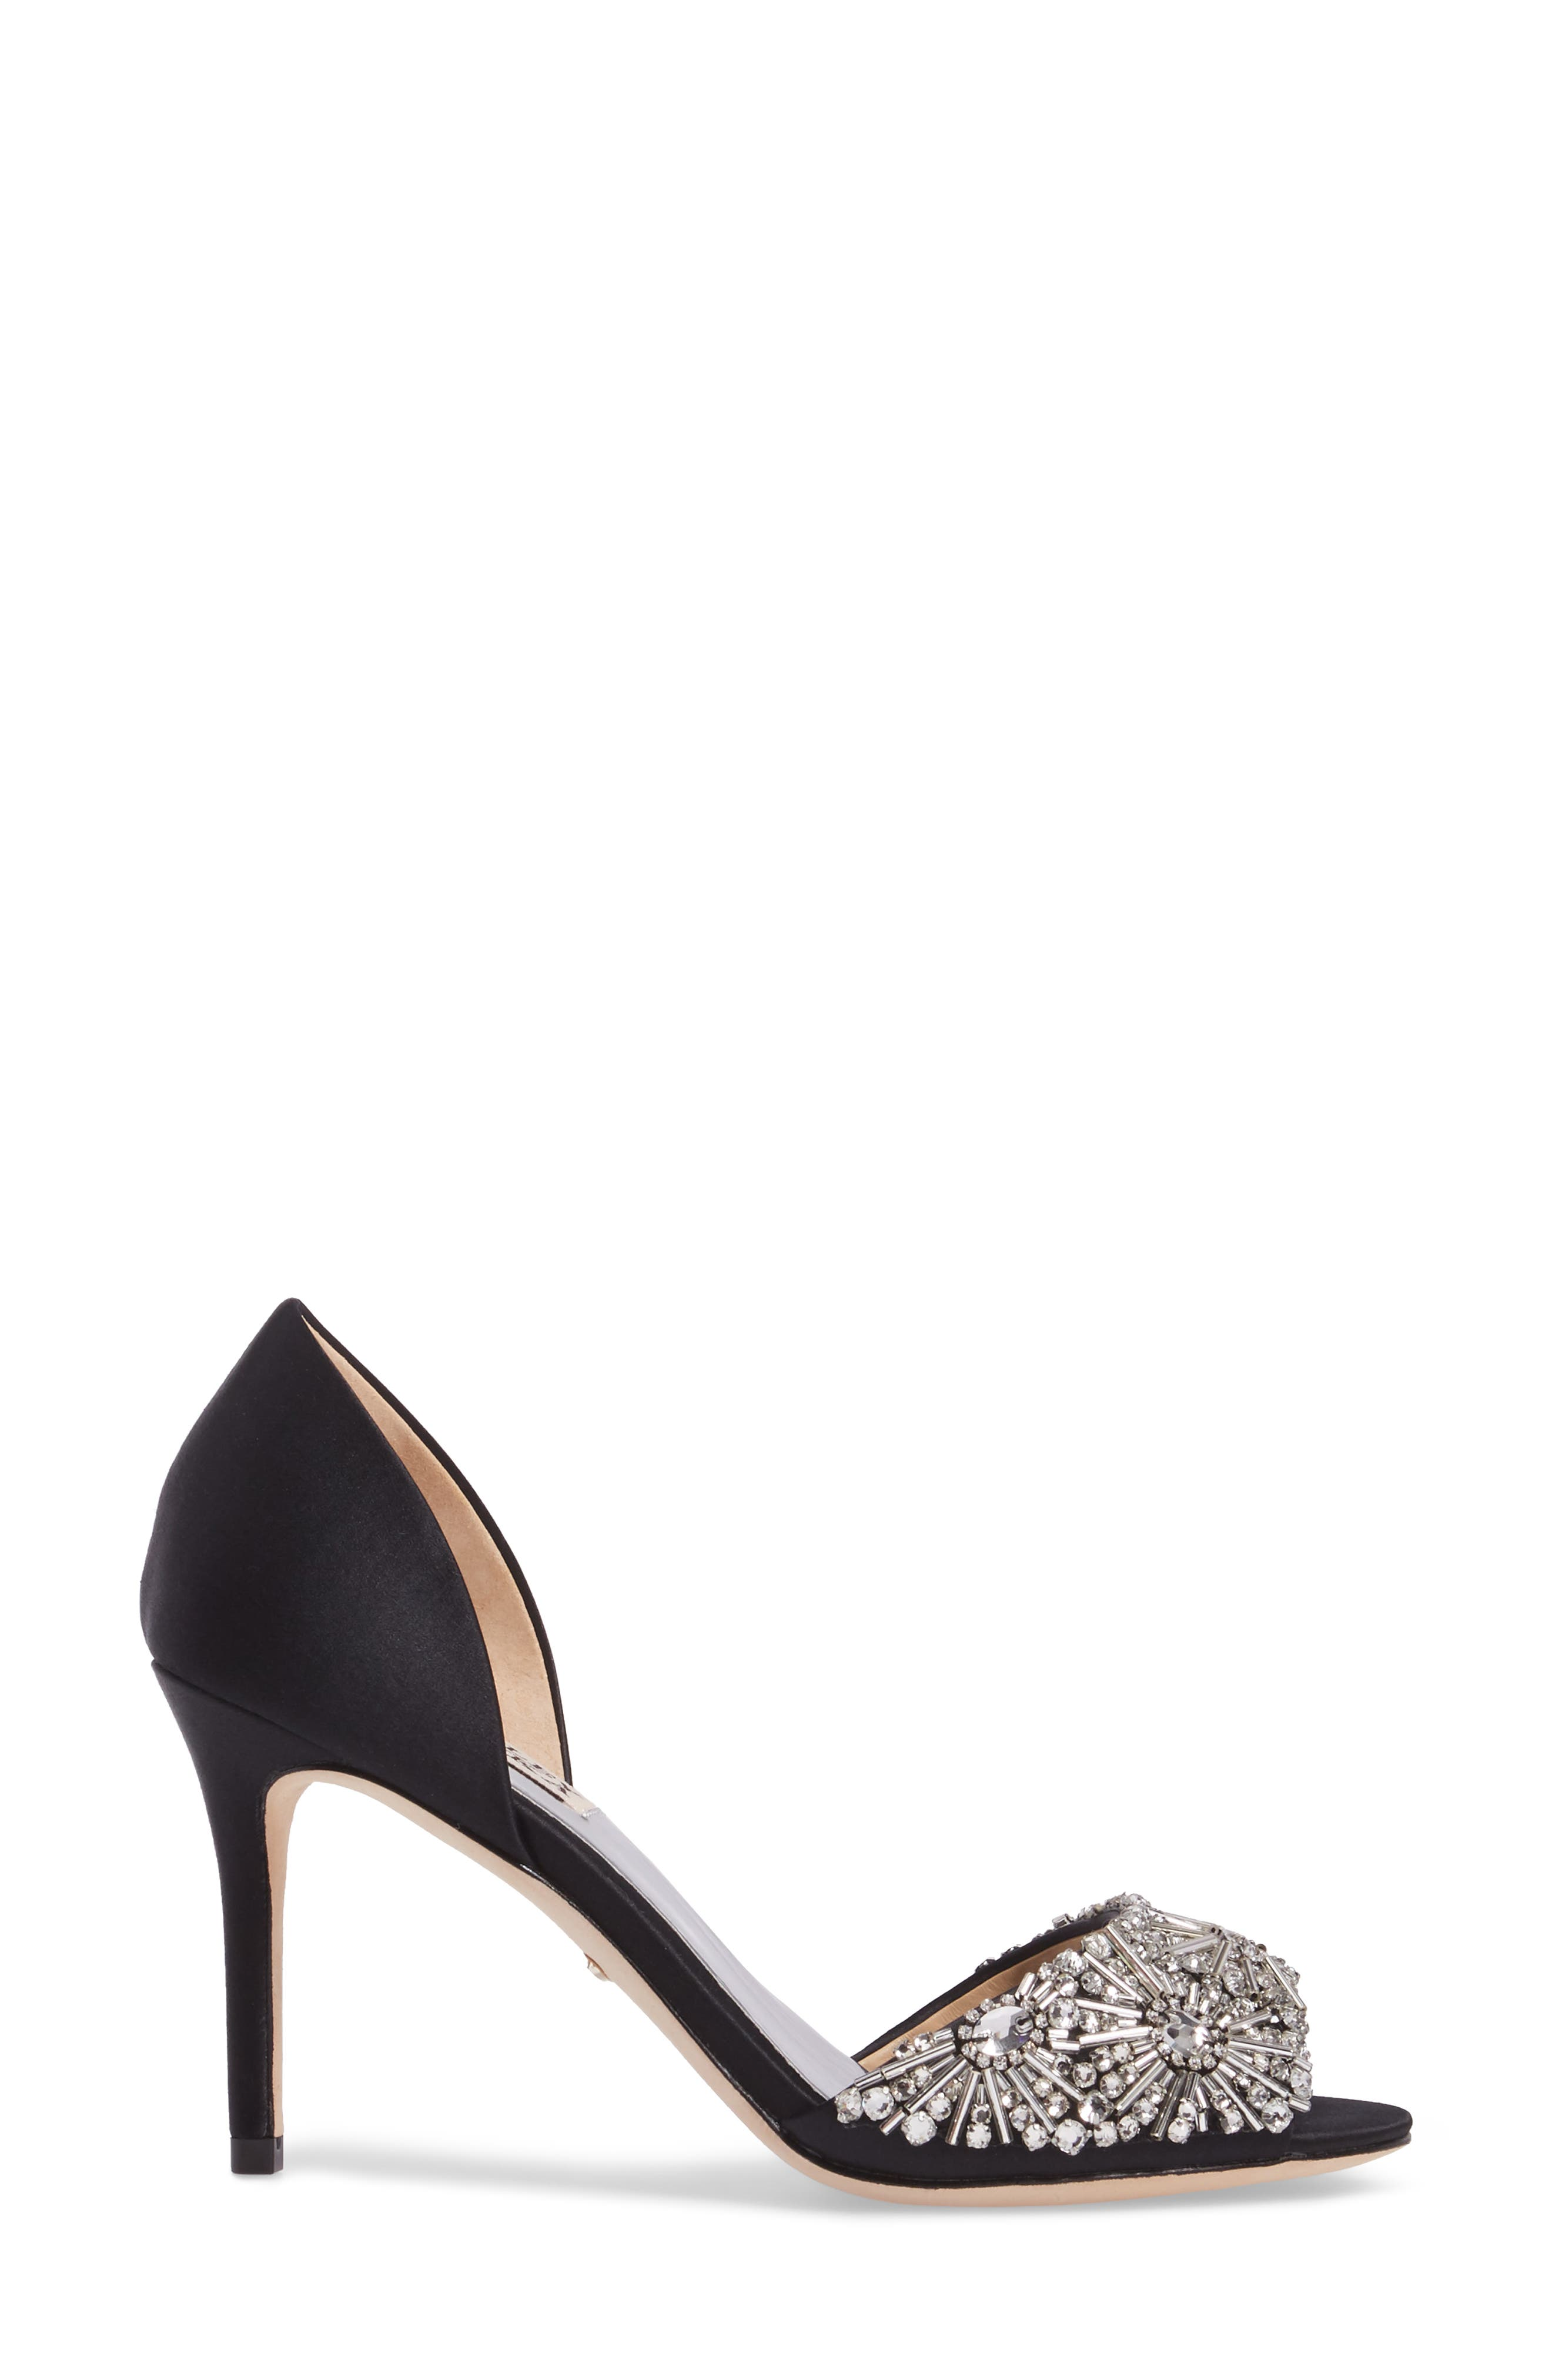 Maria Embellished d'Orsay Pump,                             Alternate thumbnail 13, color,